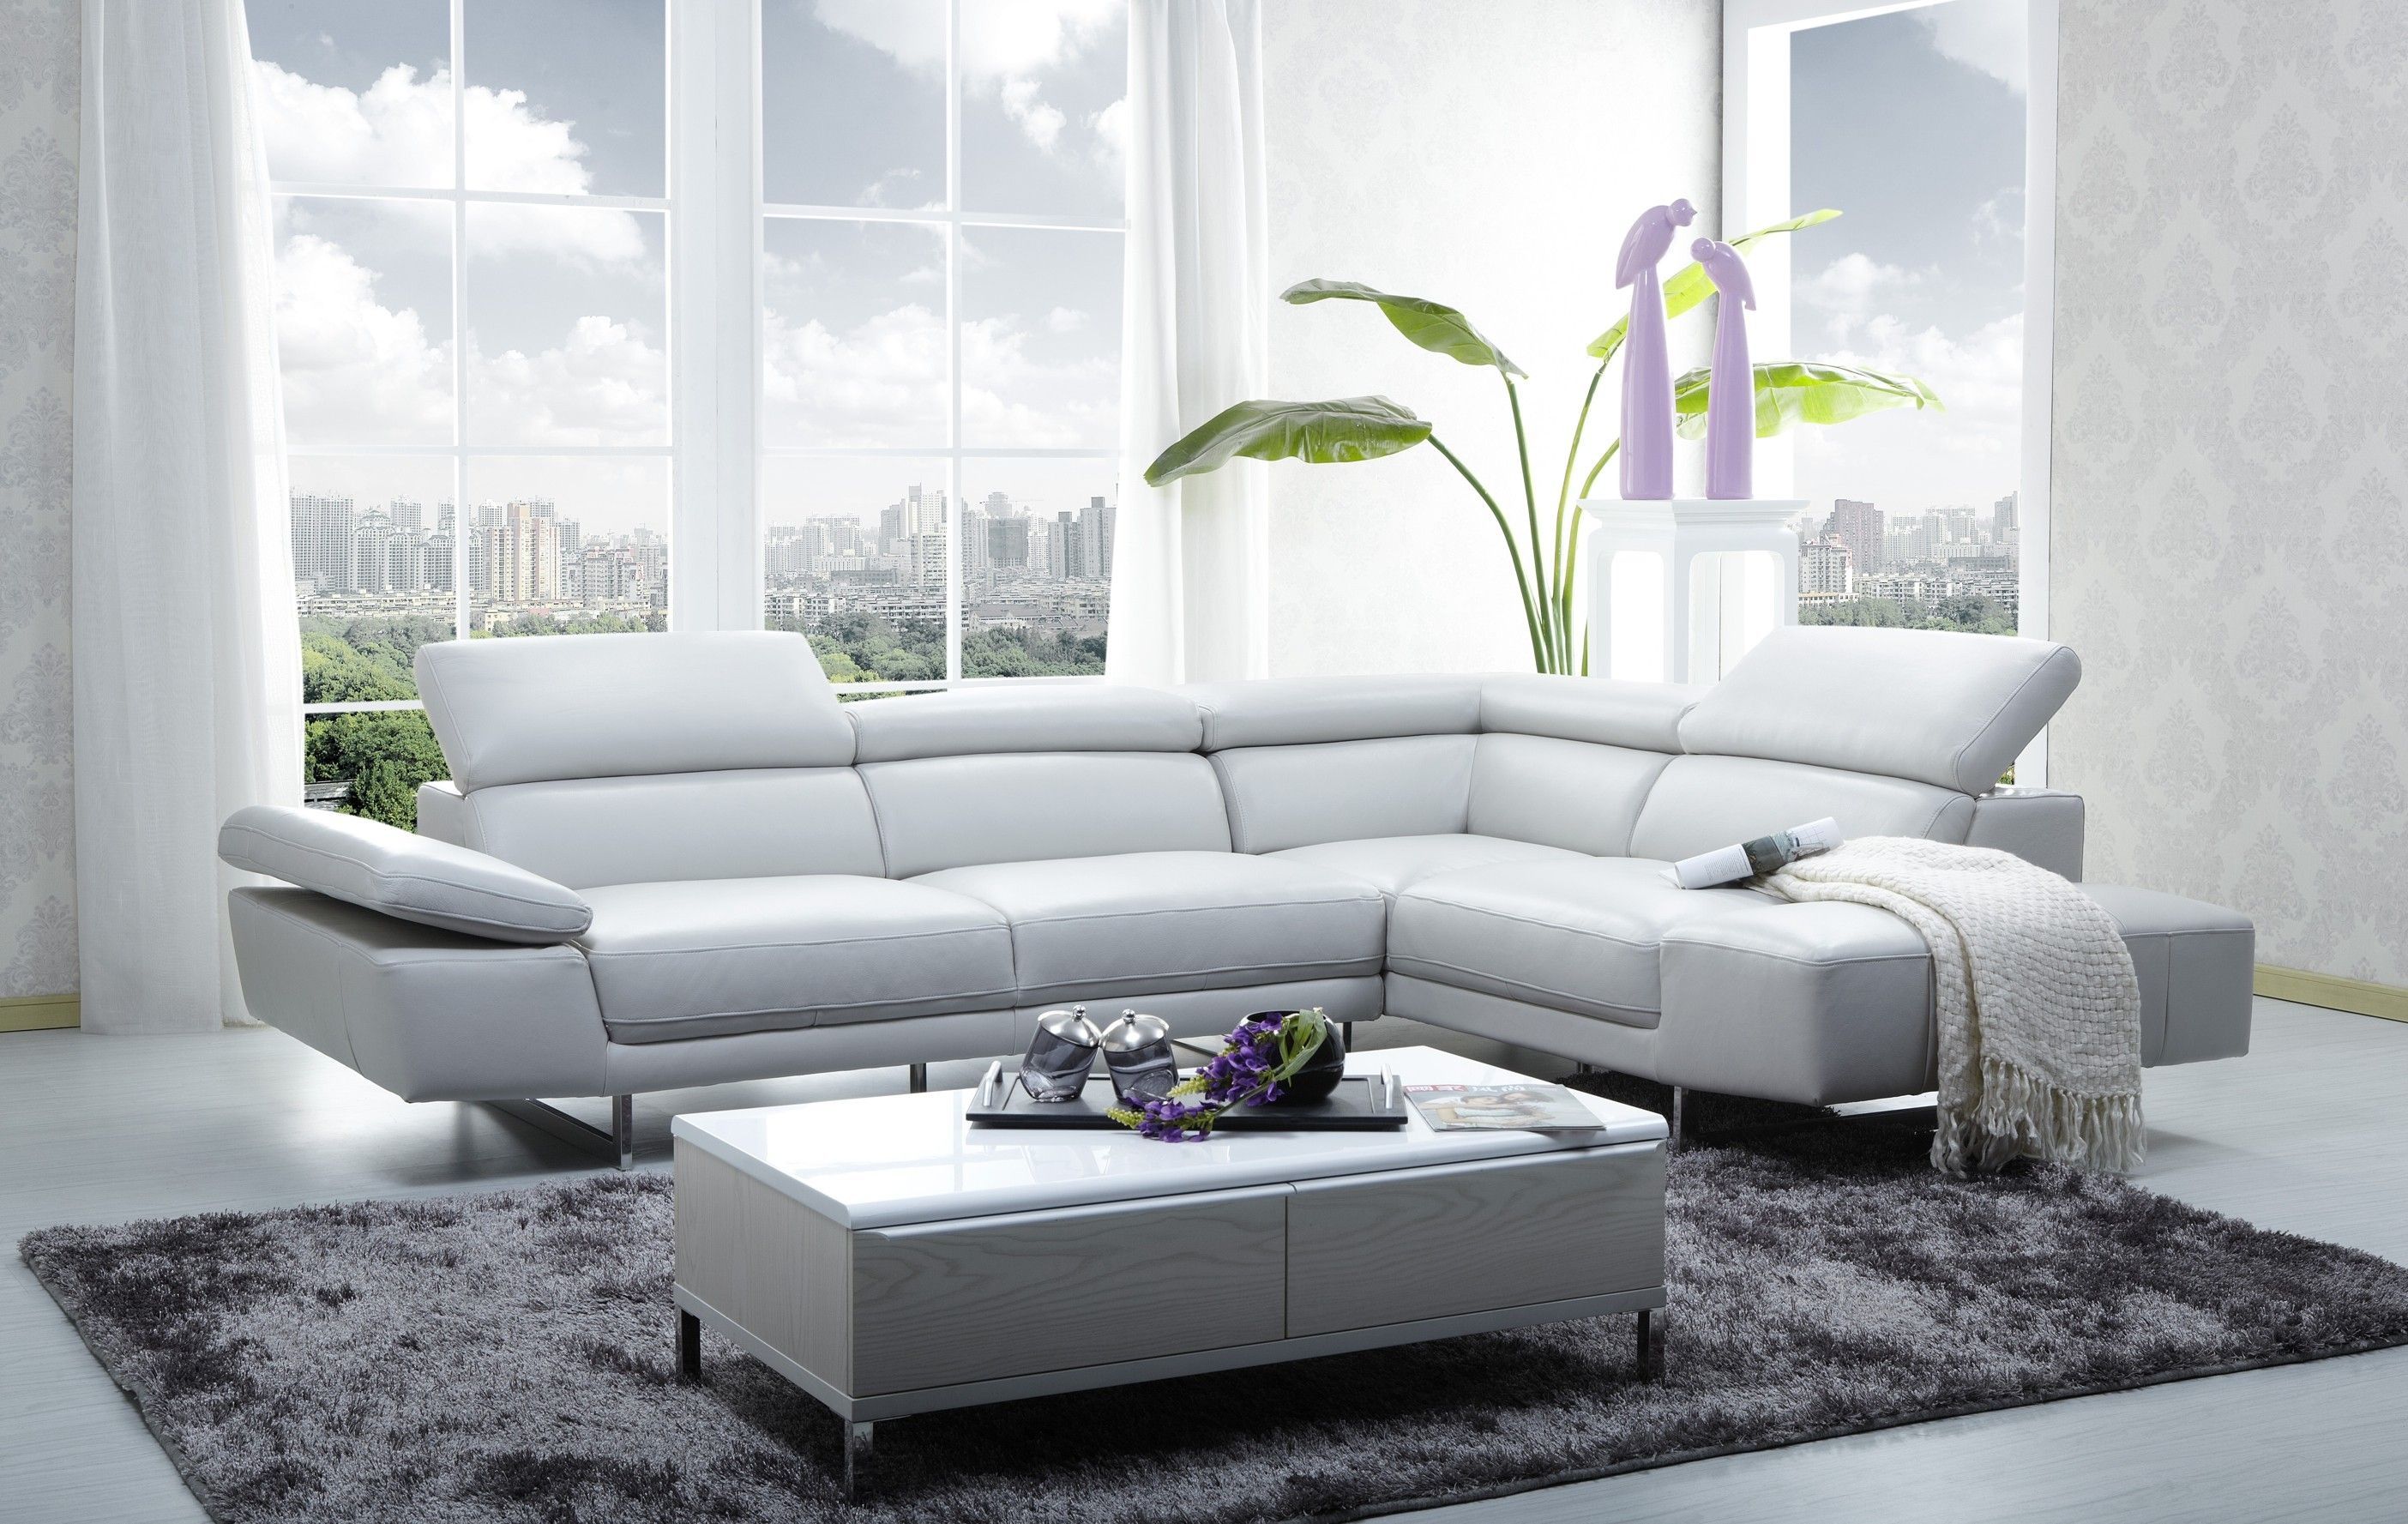 Sofa Couch and Loveseat Arrangements design ideas and photos